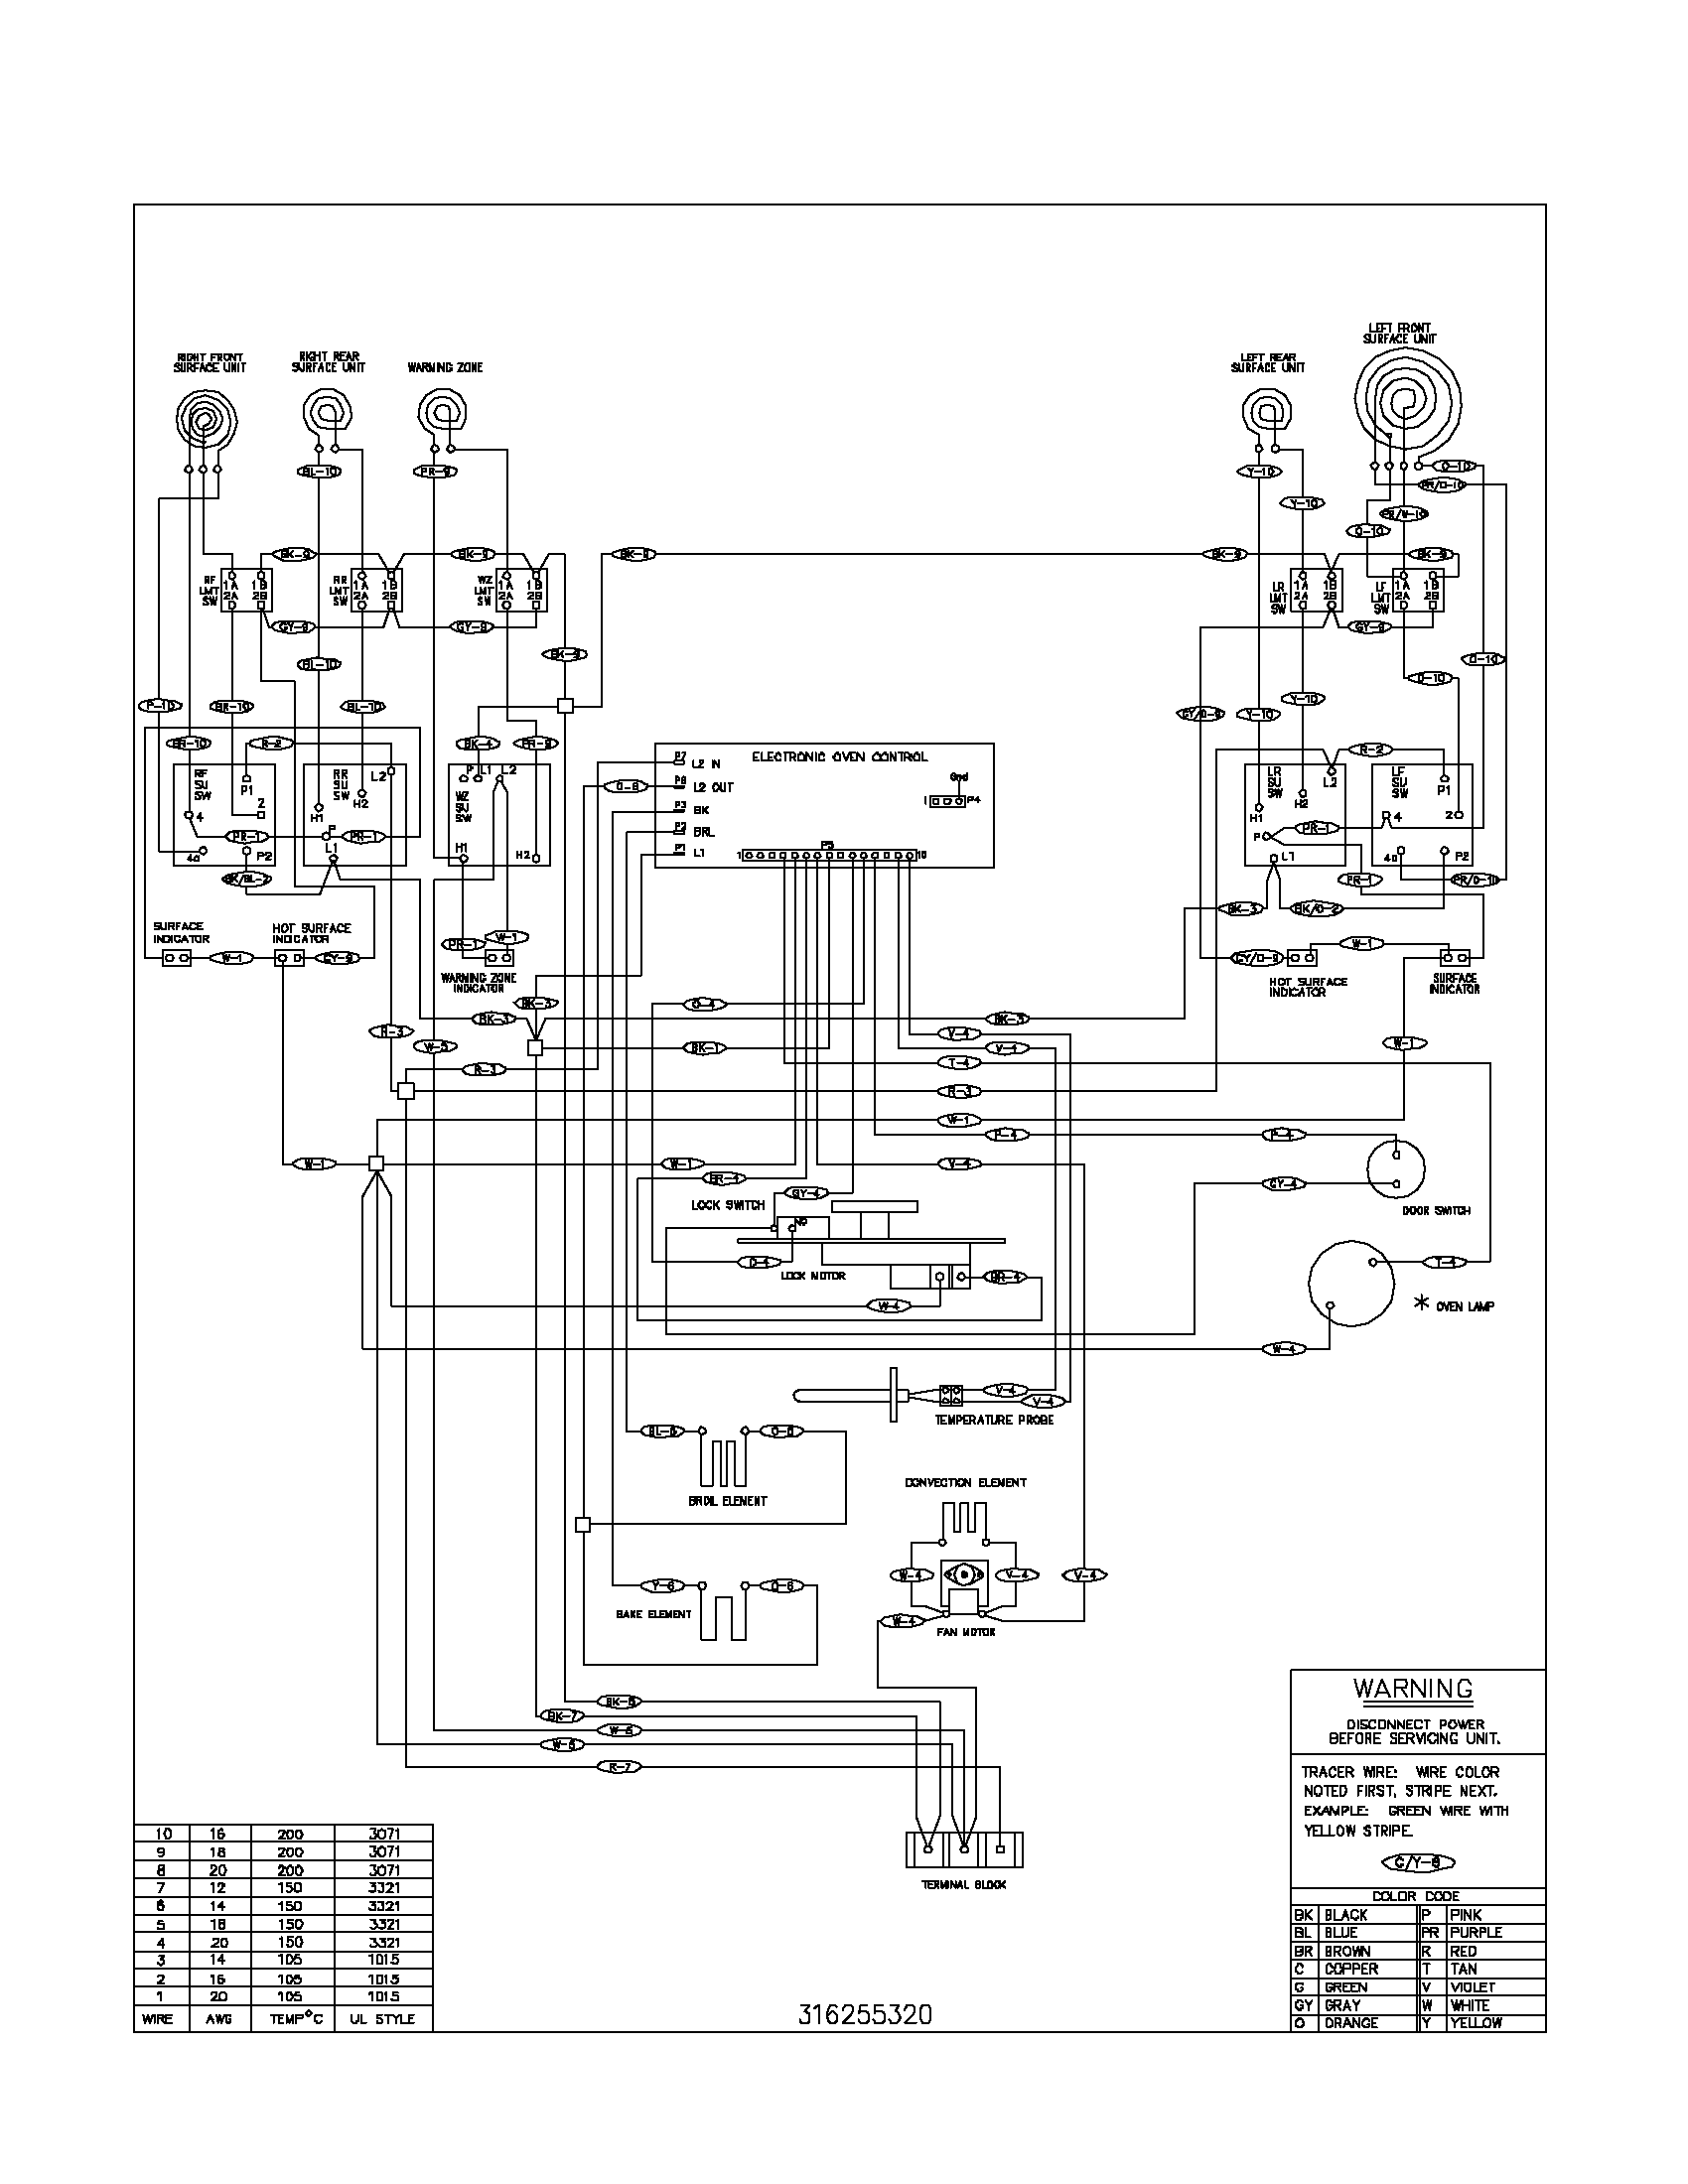 wiring diagram parts whirlpool fefl88acc electric range timer stove clocks and wiring diagram for electric fireplace at reclaimingppi.co